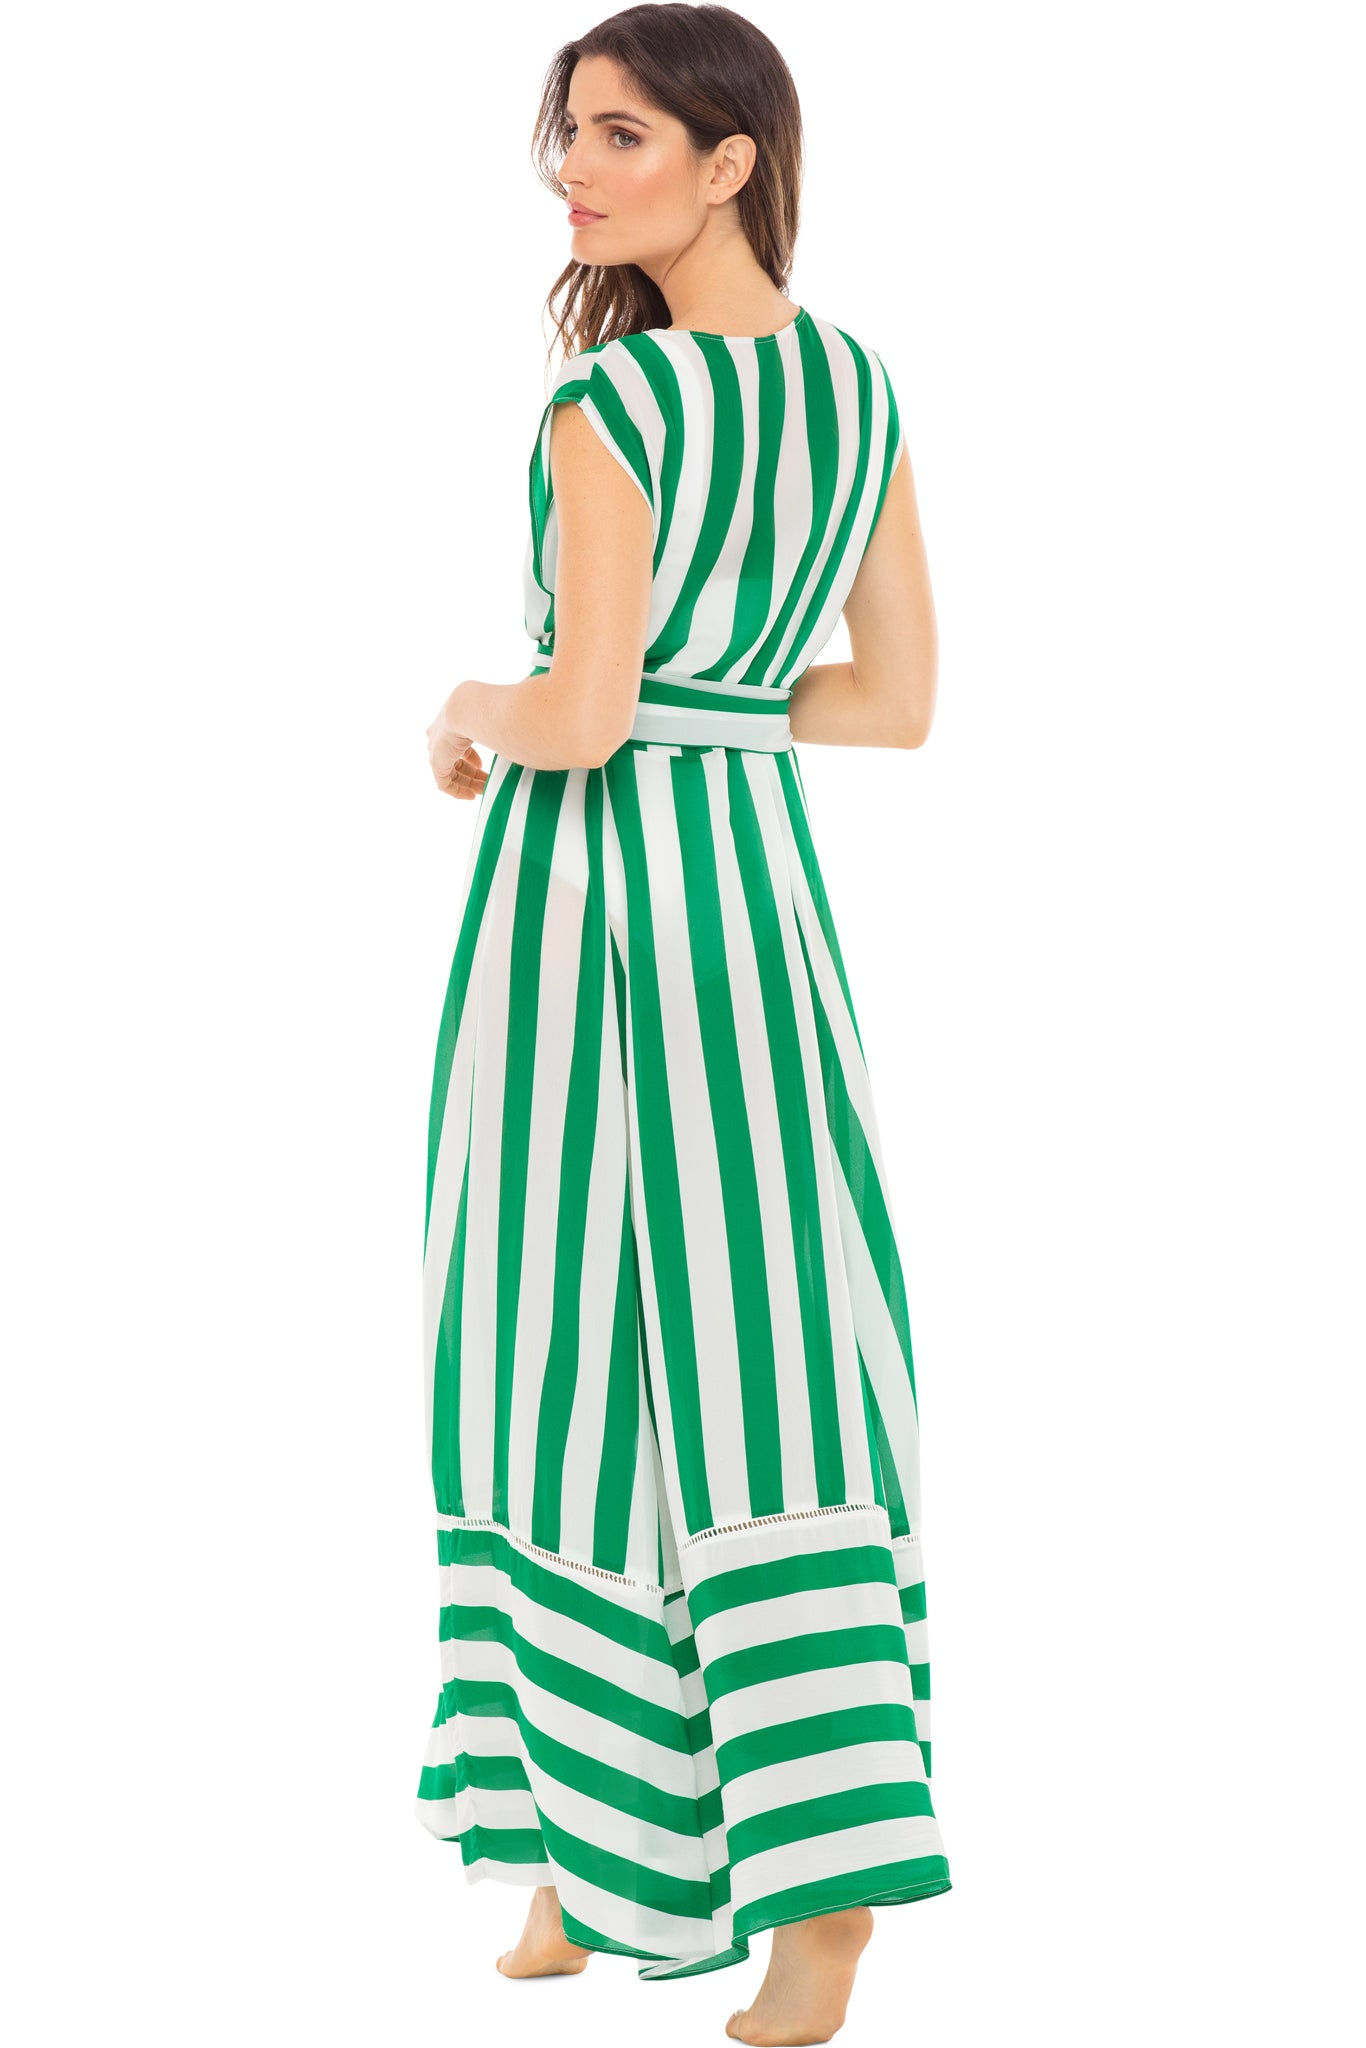 Audrey sleeveless maxi cover-up in green and white stripes - back